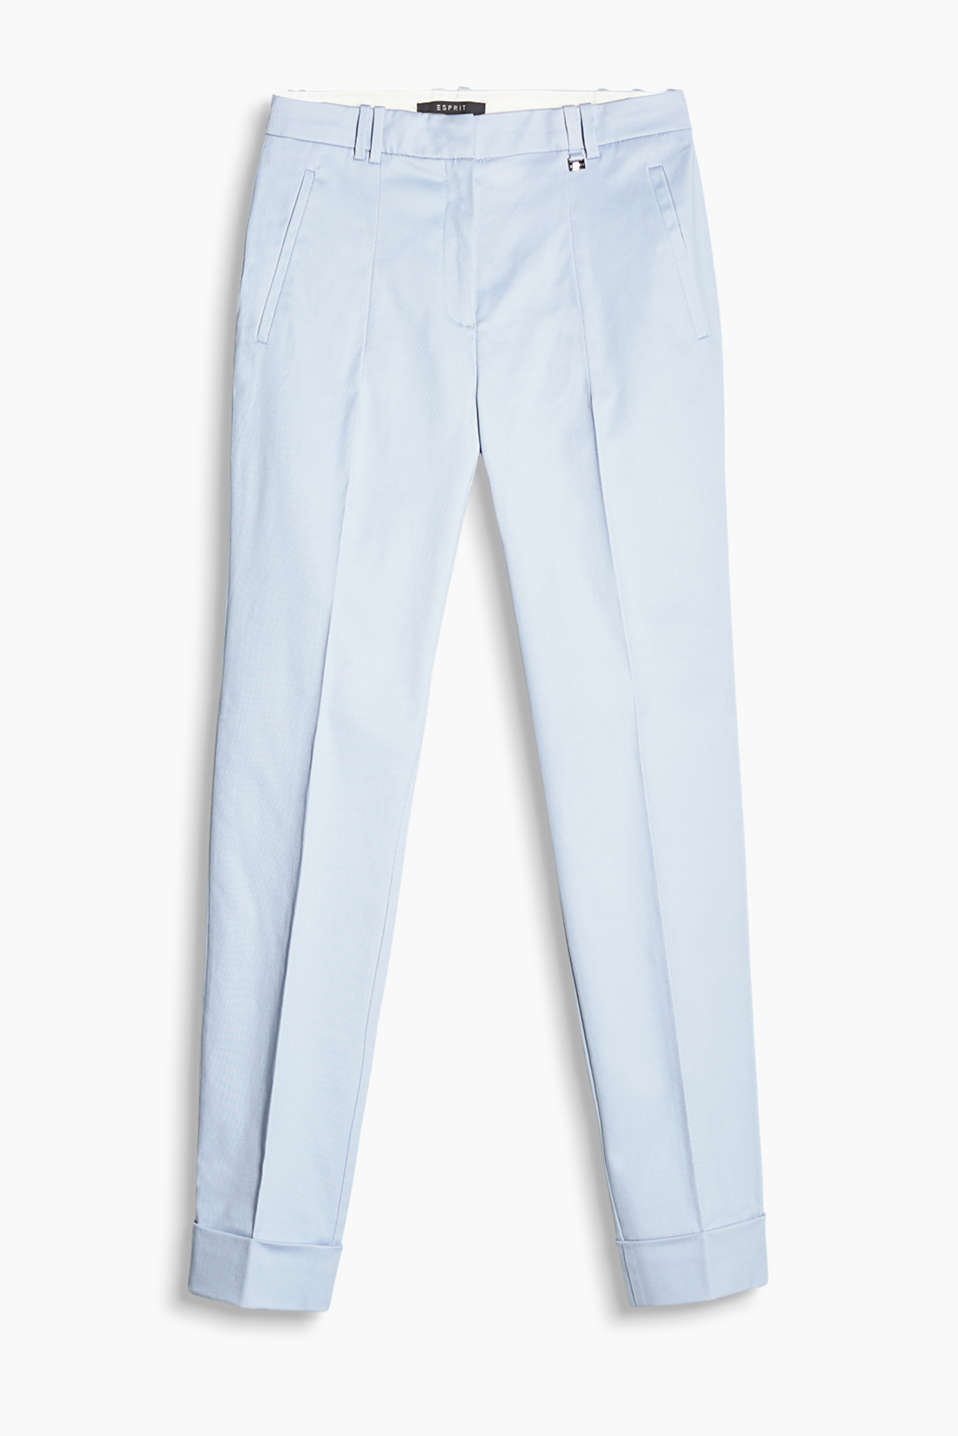 Ankle-length twill trousers with fixed turn-up hems, cotton/stretch